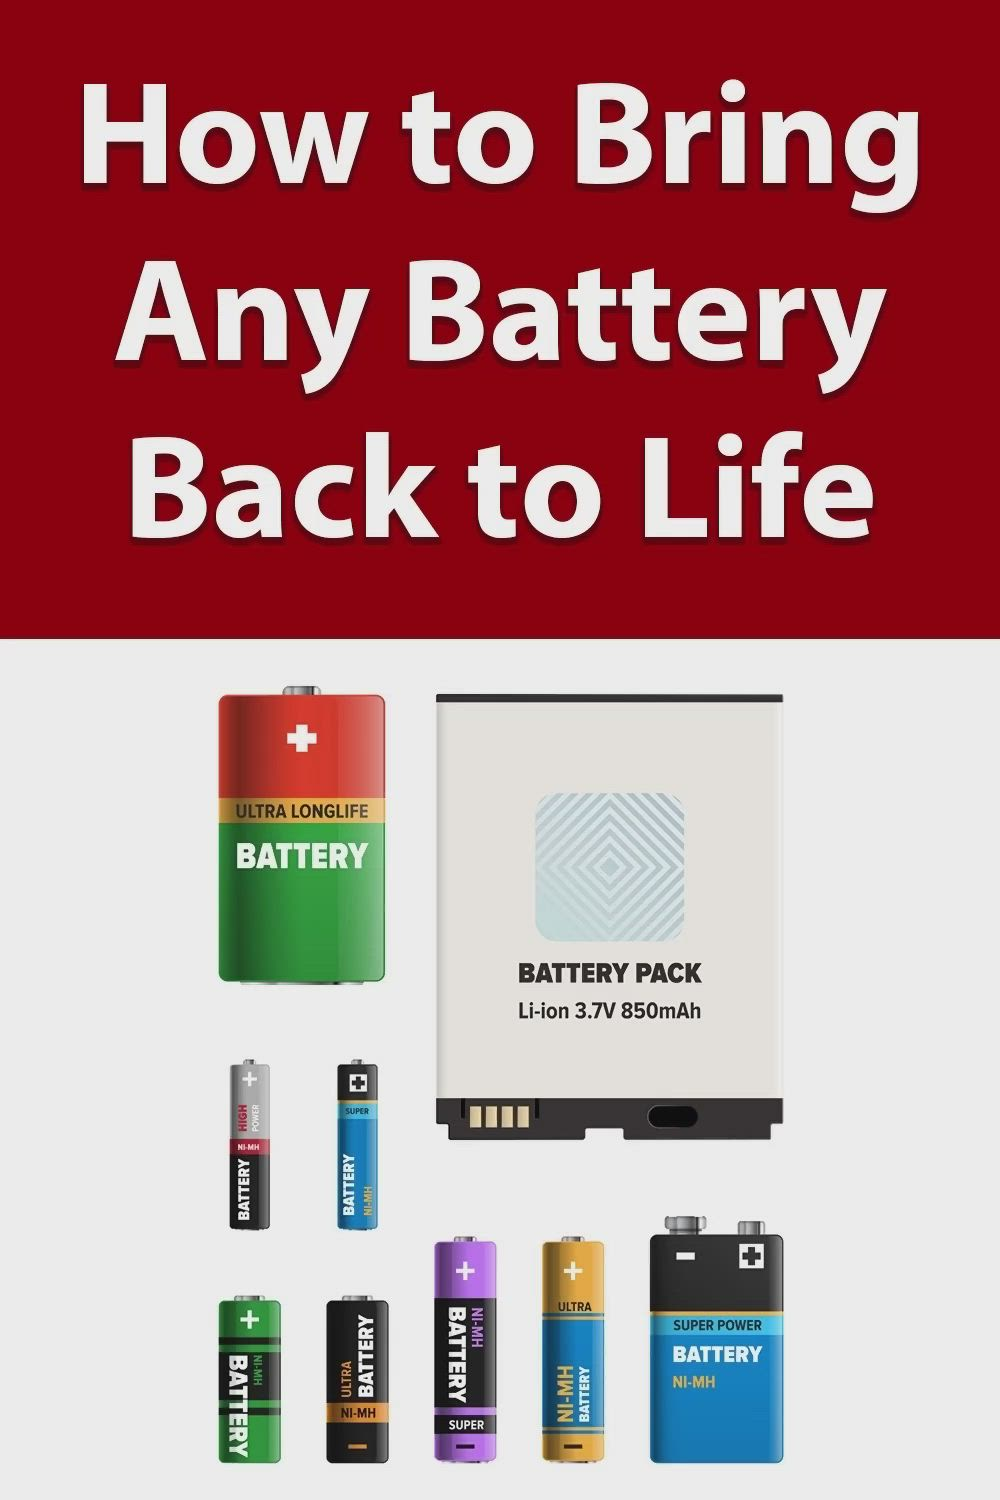 Ez Battery Reconditioning Pdf Diy Battery Reconditioning Methods At Home Cars Course Repair Video Recondition Batteries Car Battery Hacks Dead Car Battery